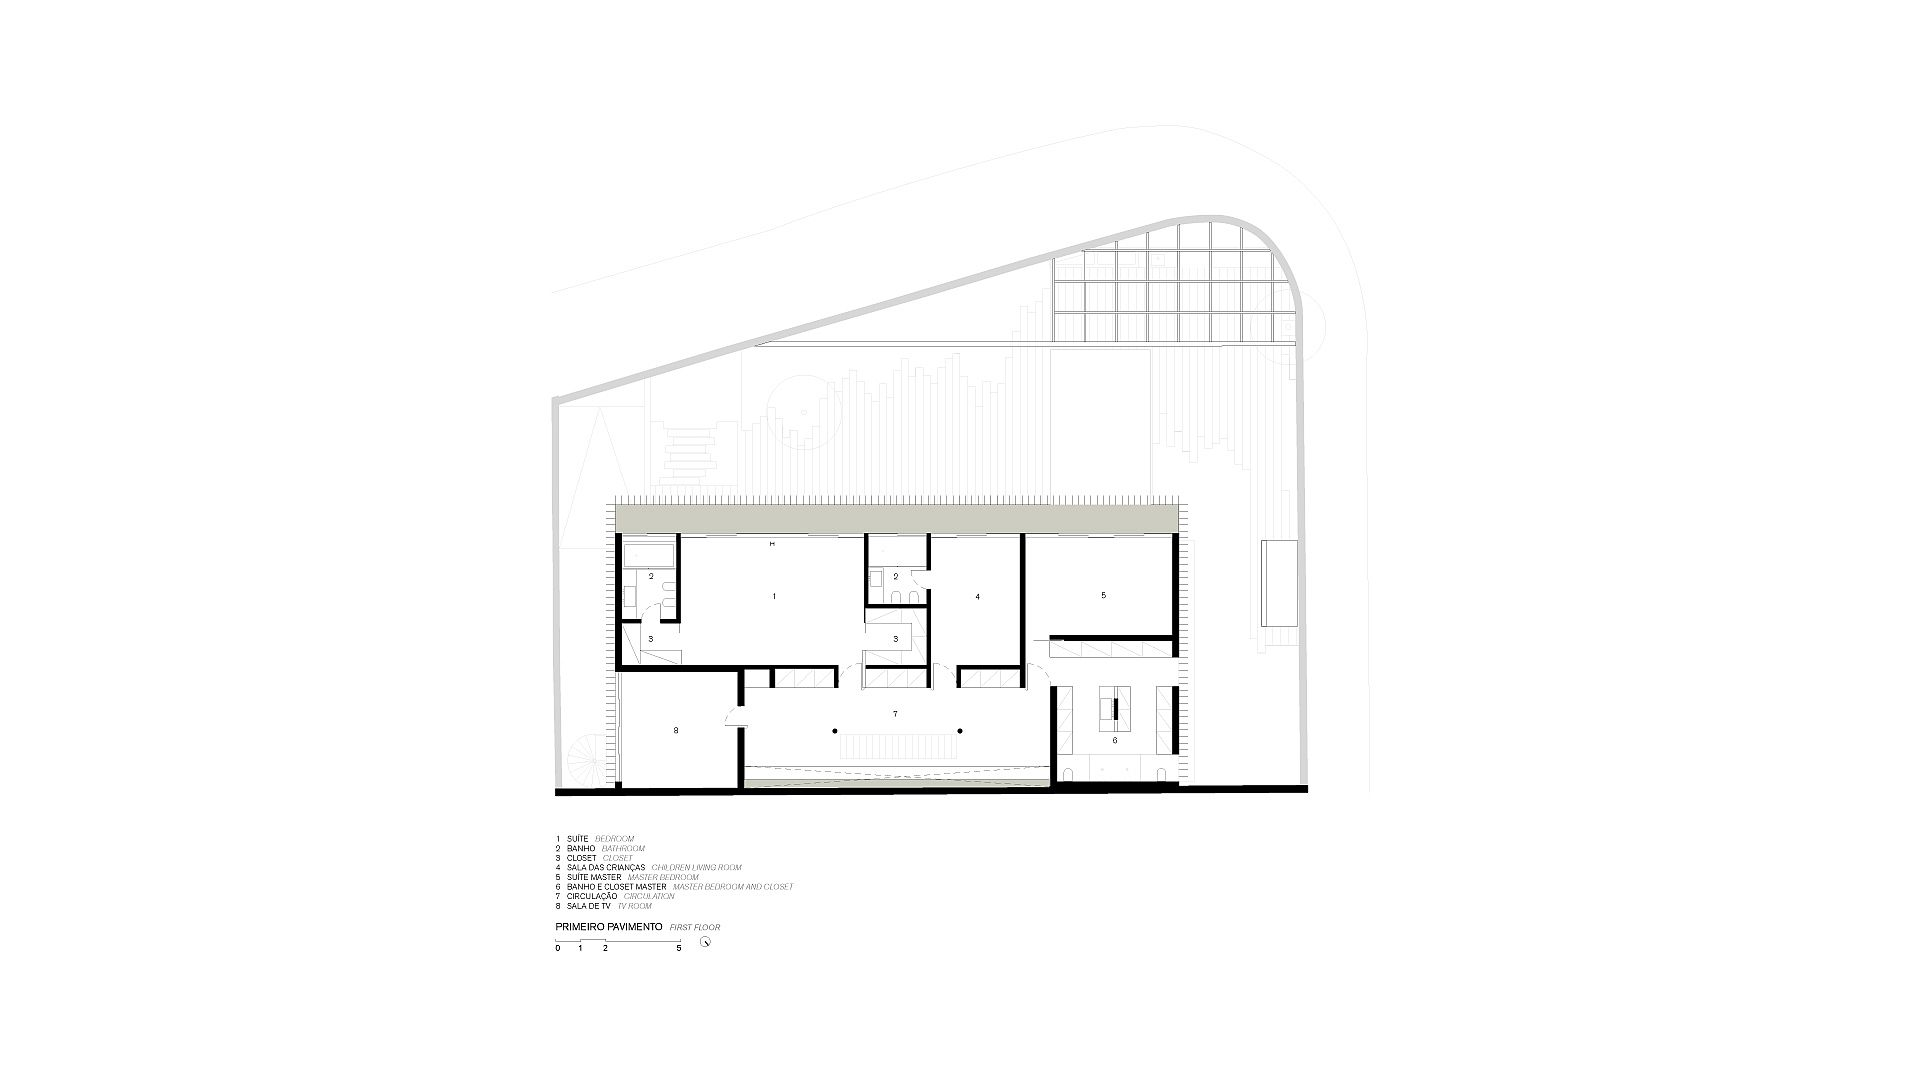 Upper level floor plan of the contemporary home